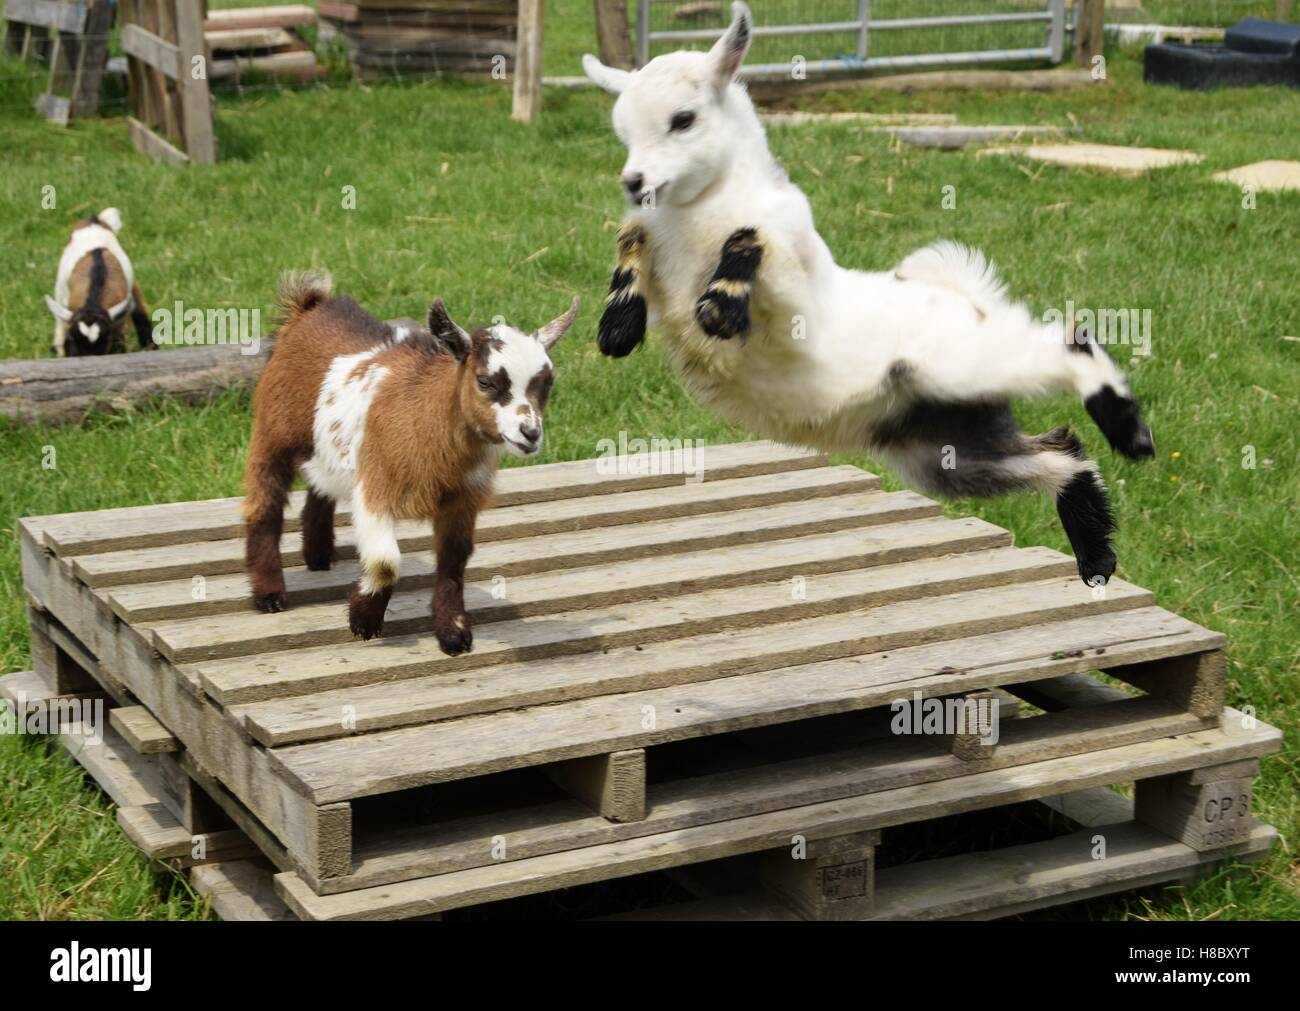 So glad to be alive. Alice the goat kid in mid air. - Stock Image